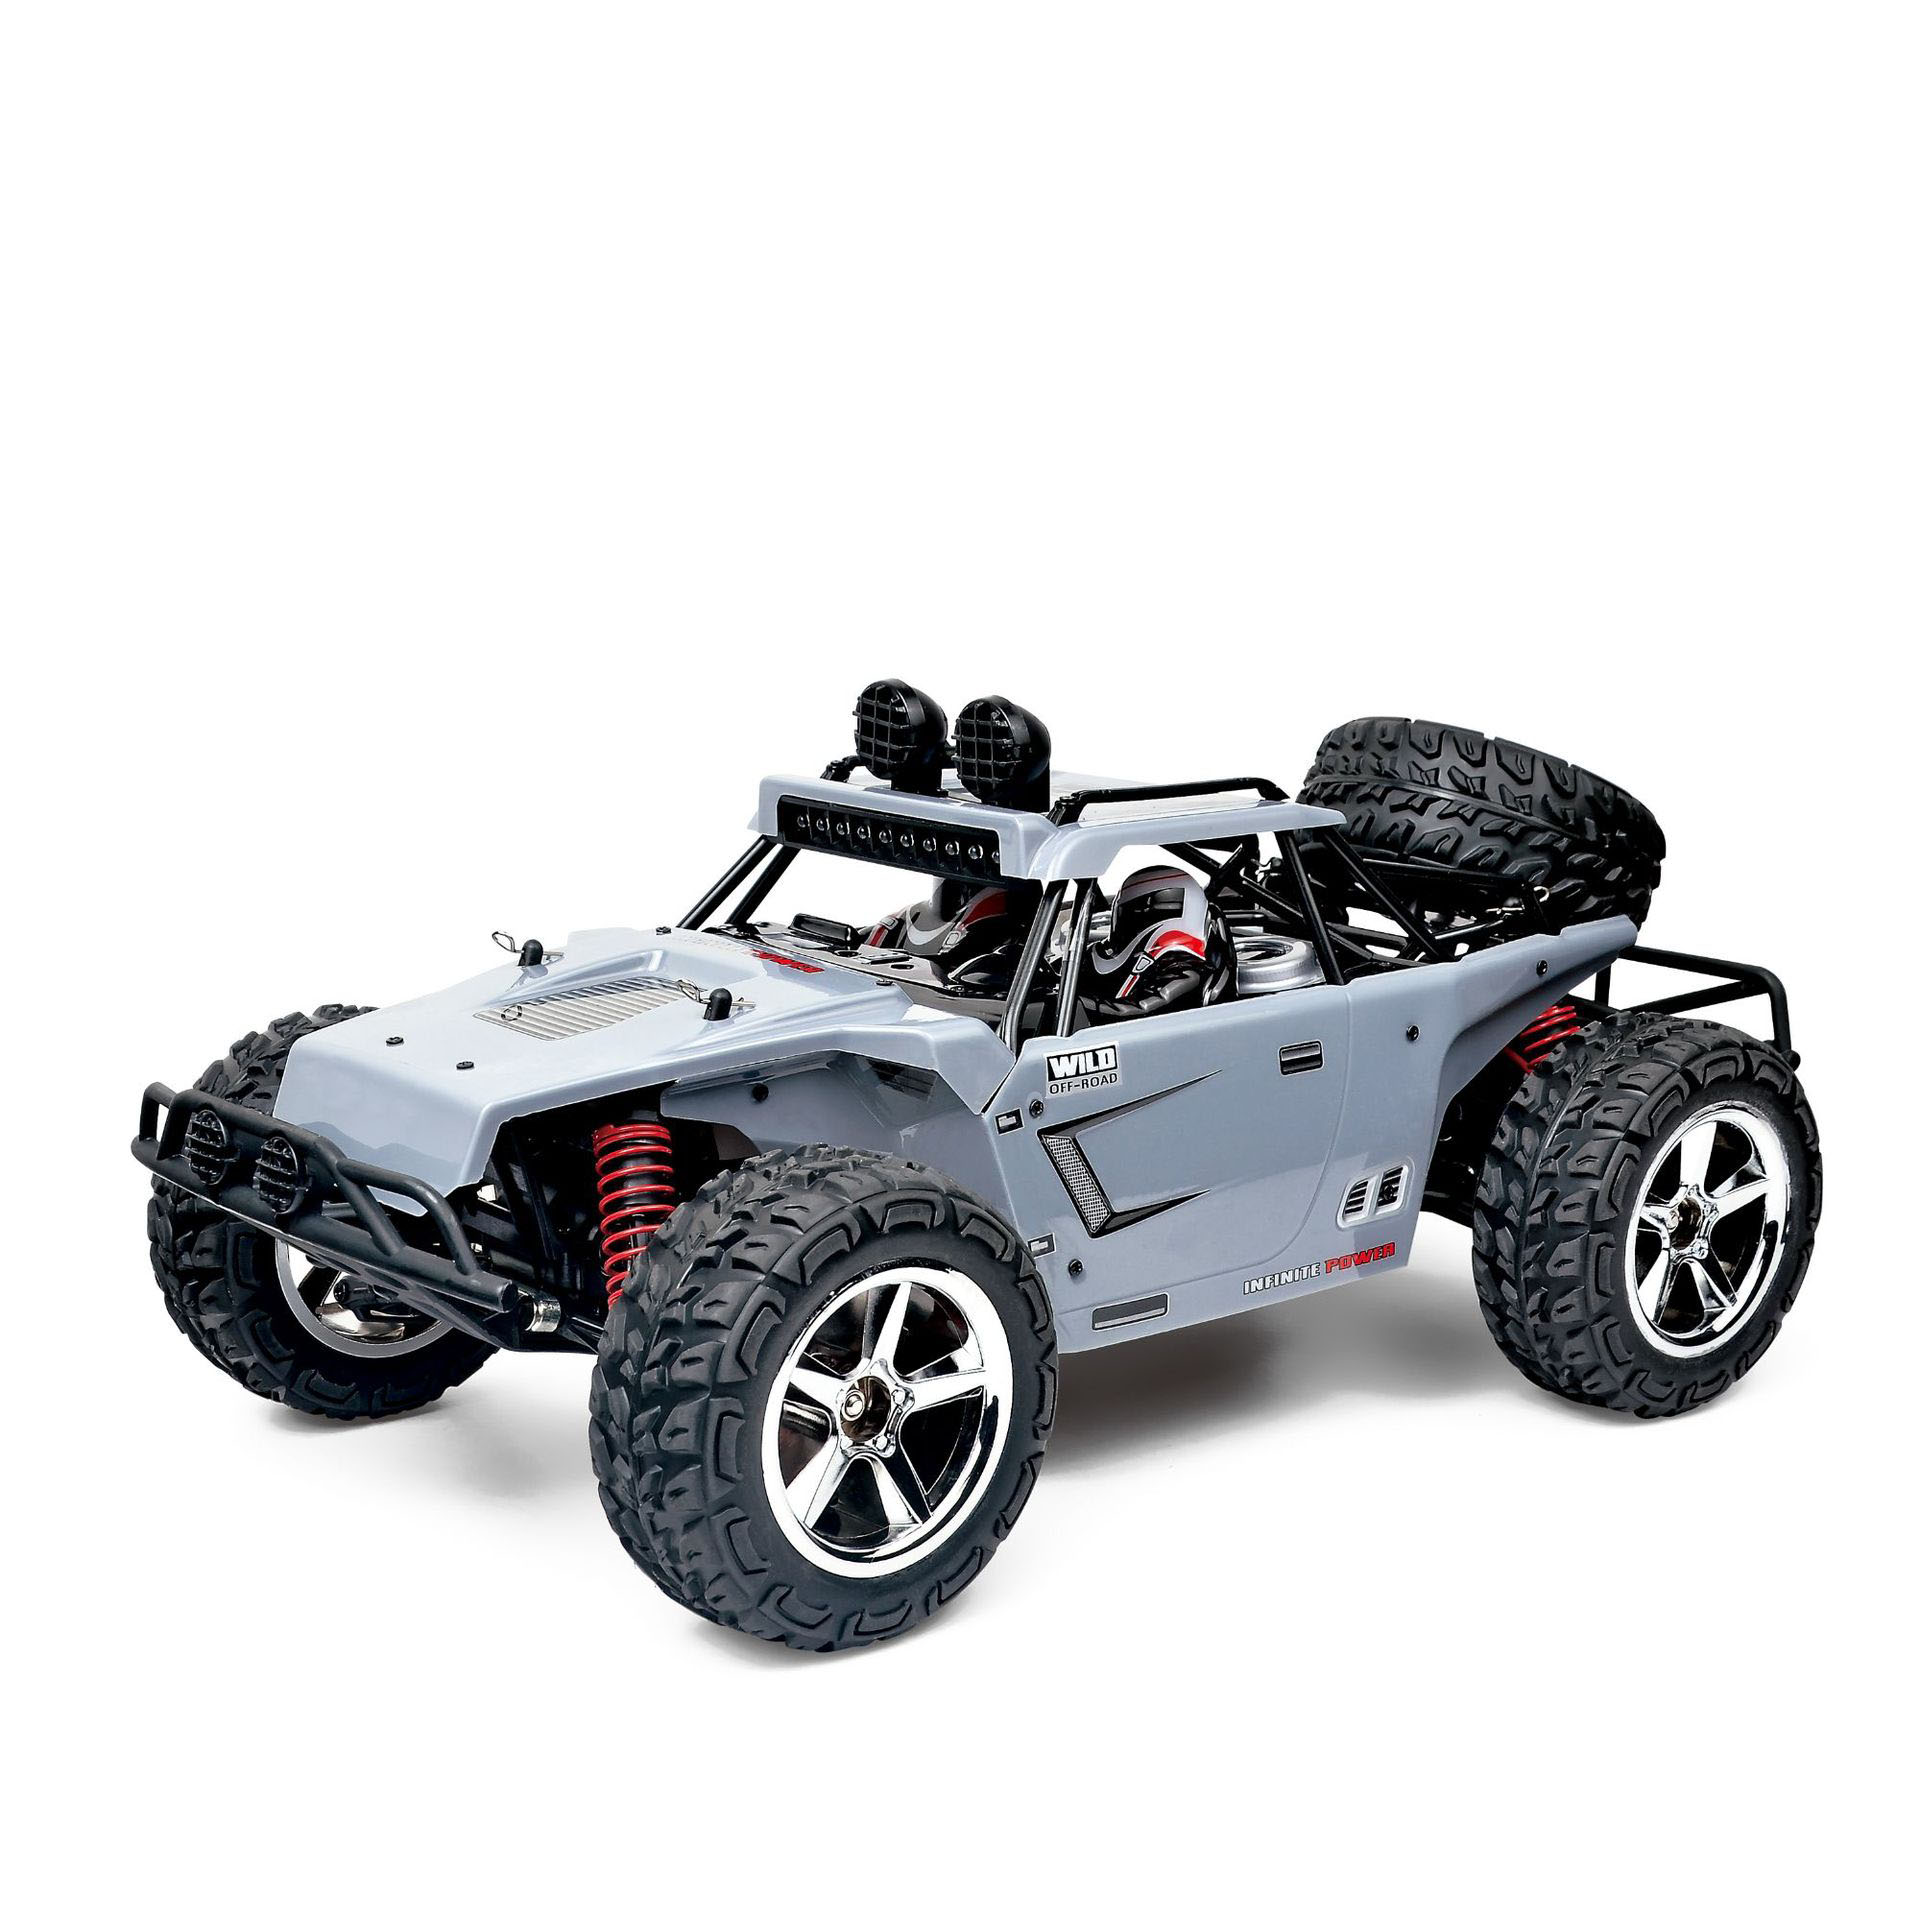 Rc kaya Off Road uzaktan kumanda kas araba